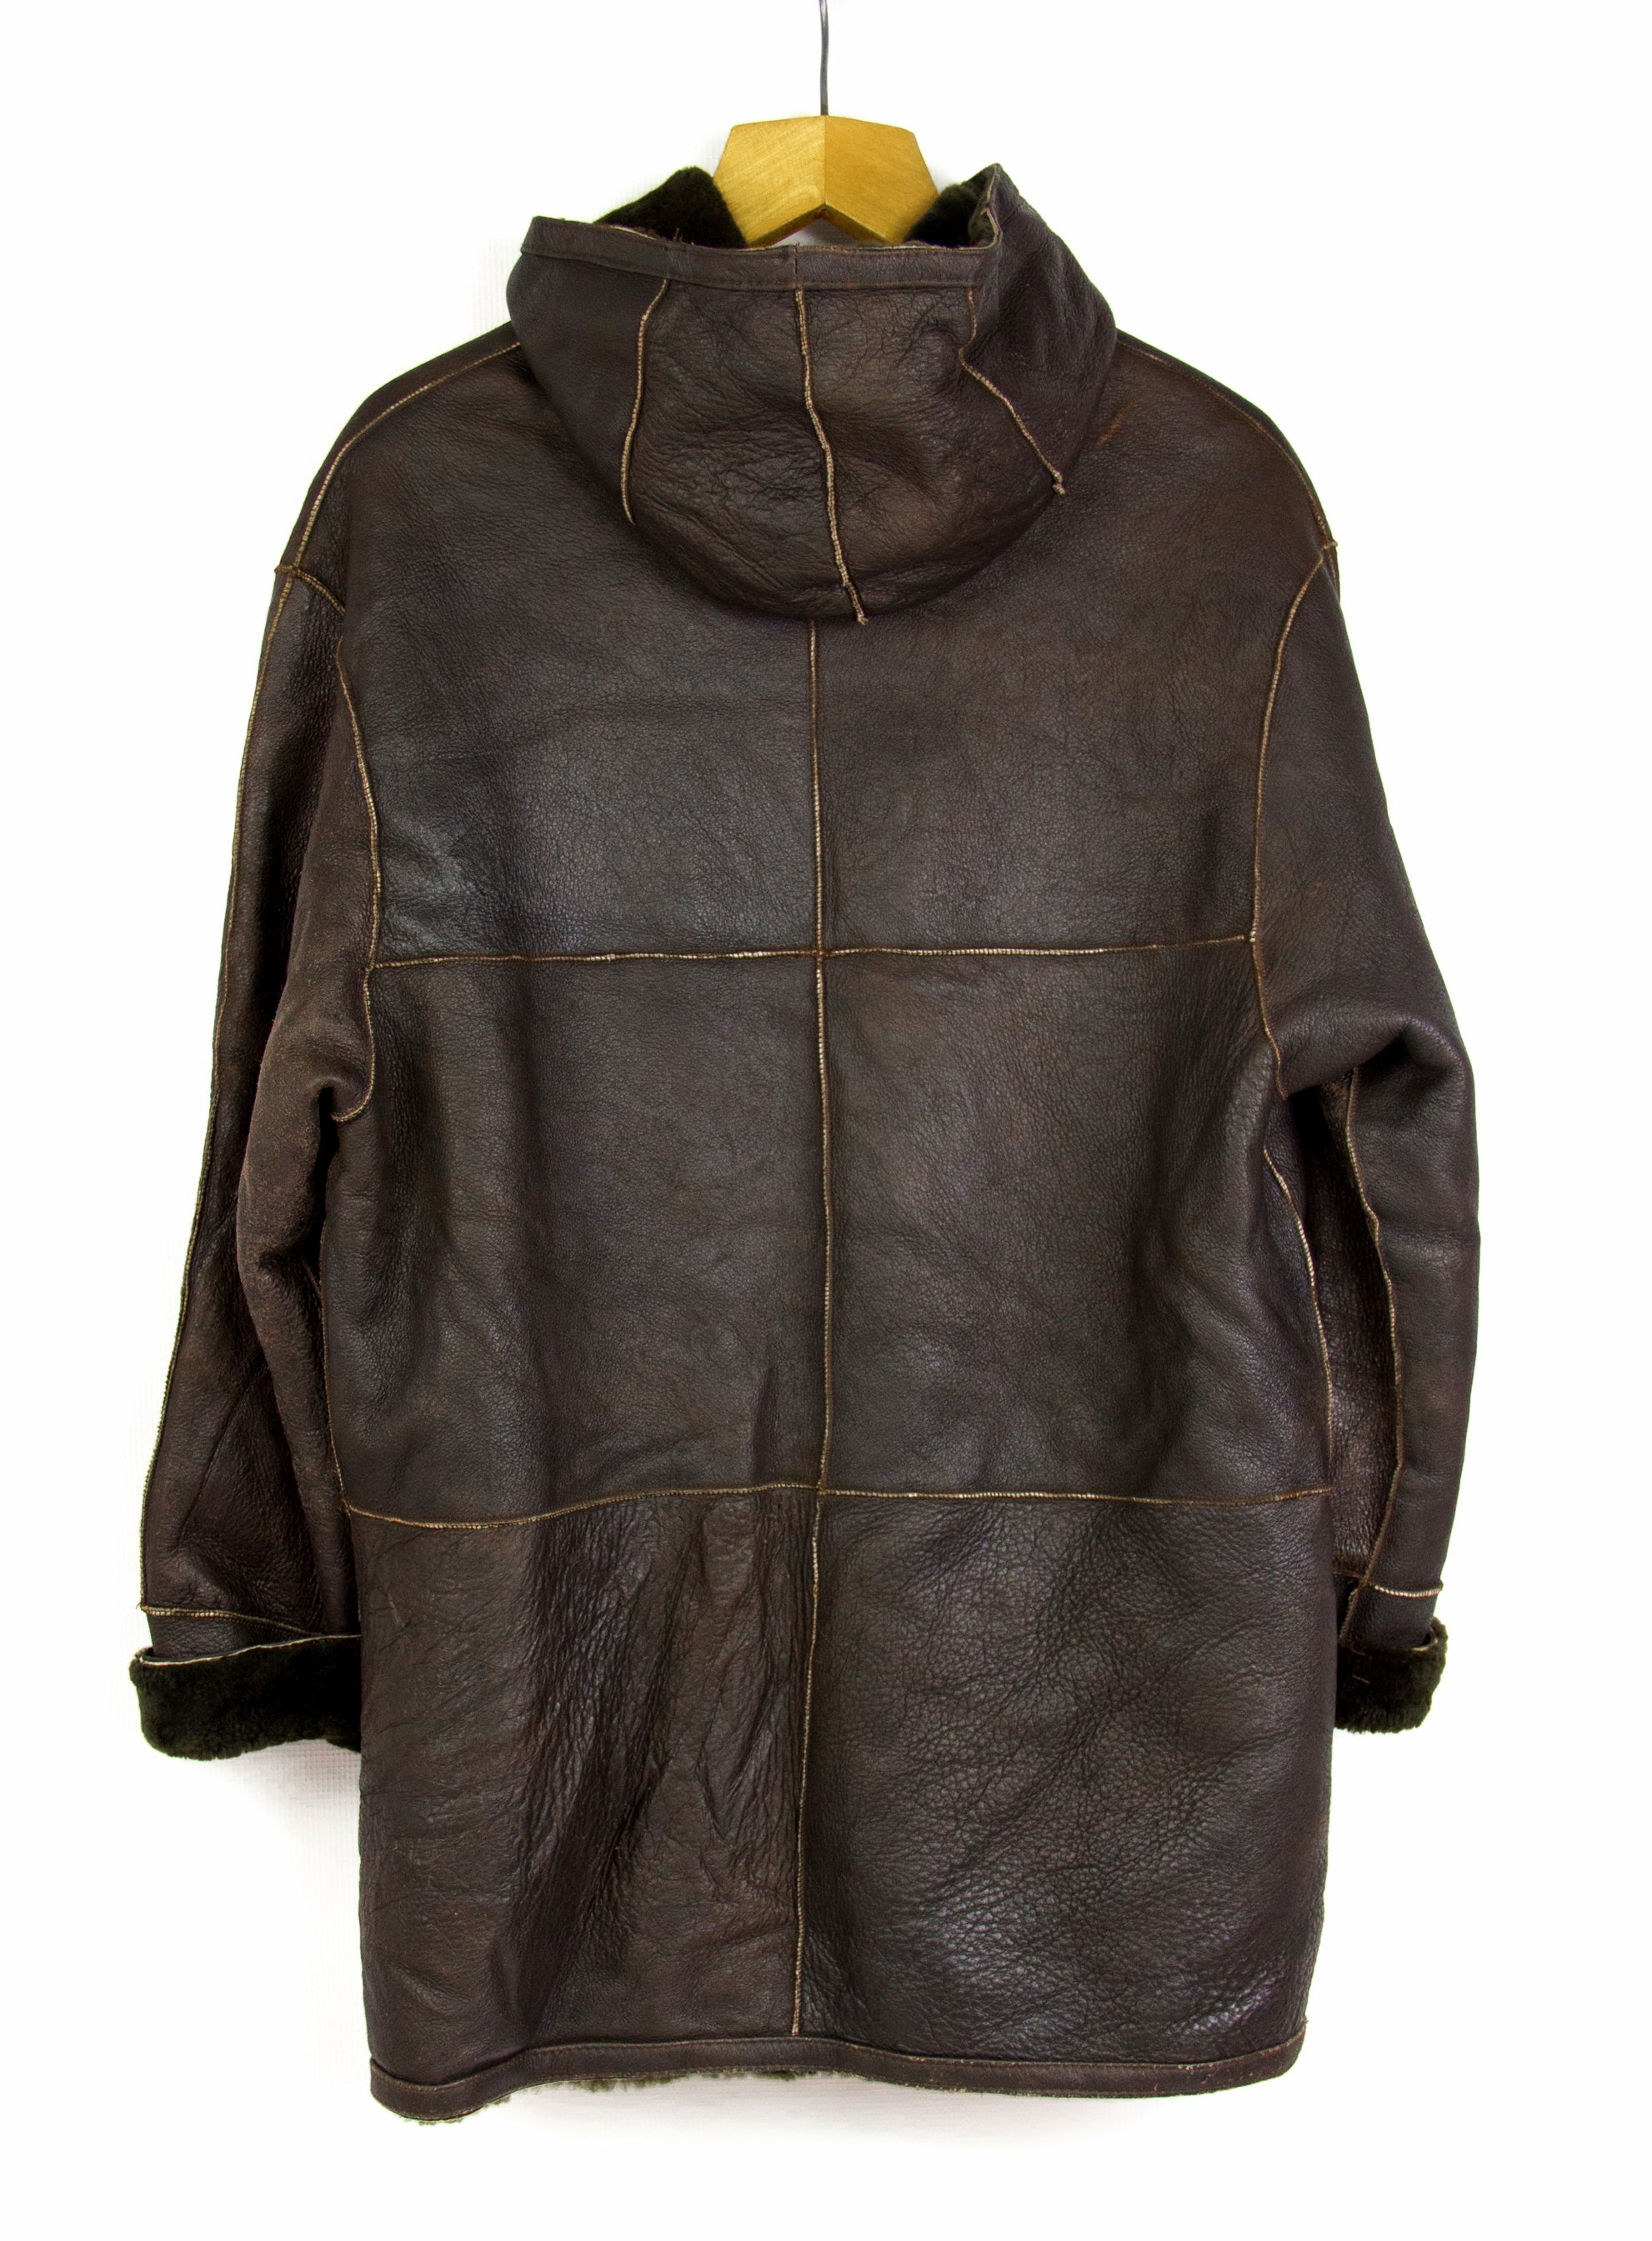 Vintage Double Faced Hooded Shearling & Leather Coat Jacket, 38 - secondfirst